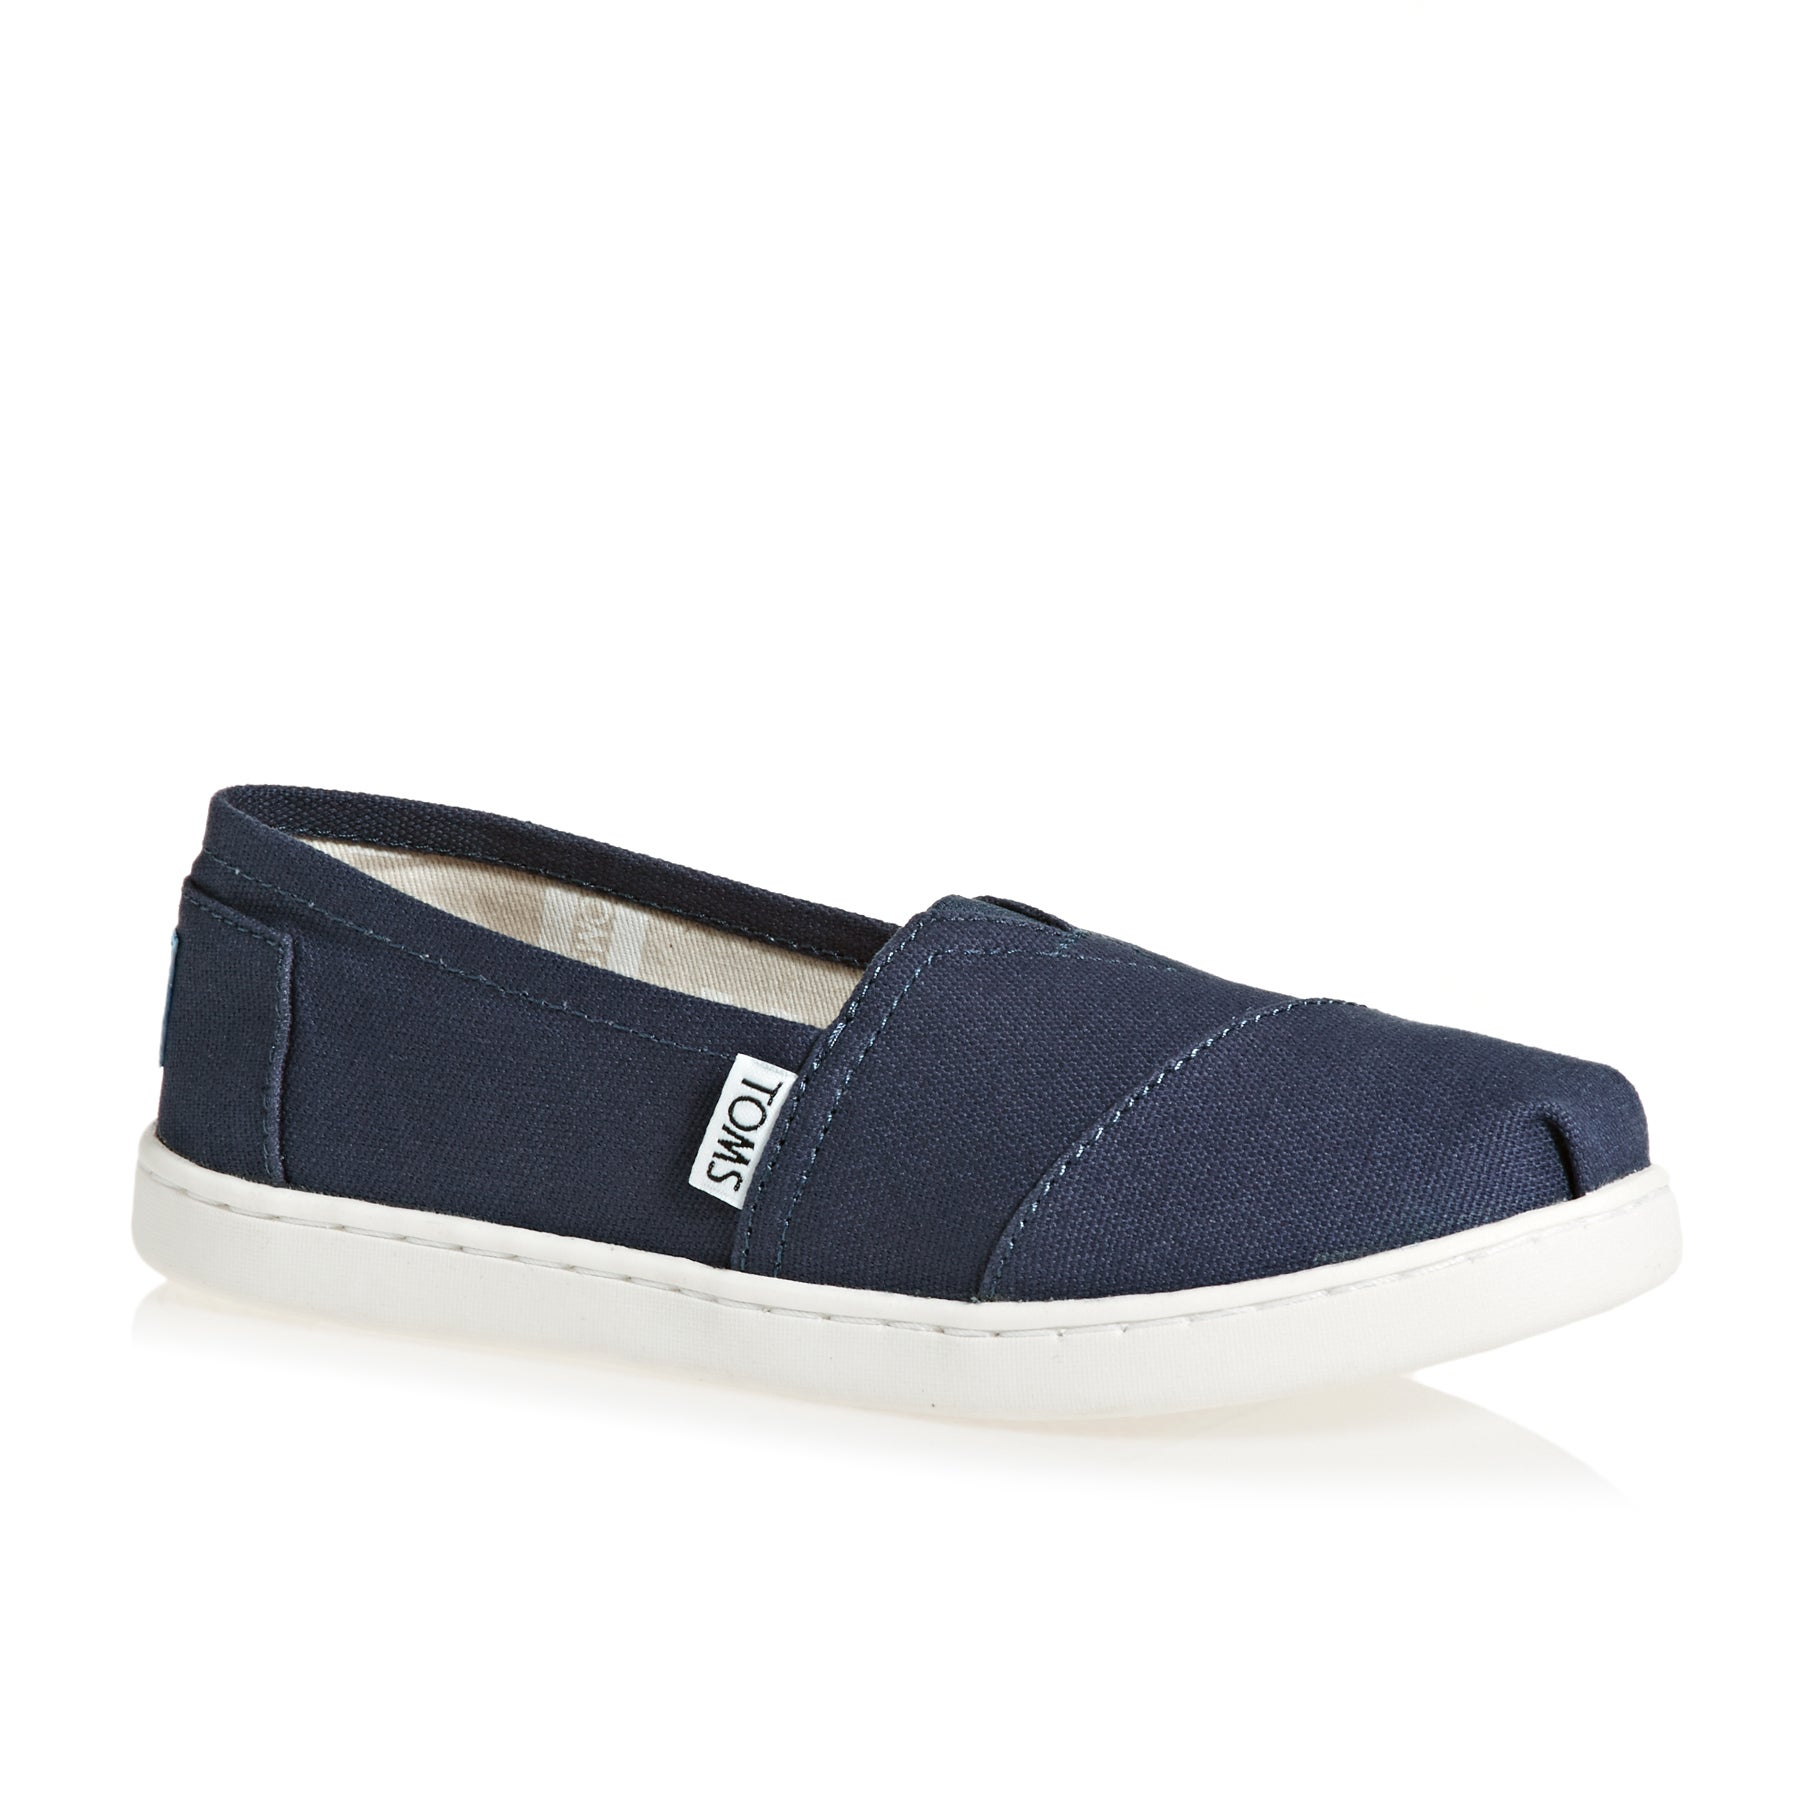 Toms Alpargata Canvas 2 Kids Slip On Shoes - Navy